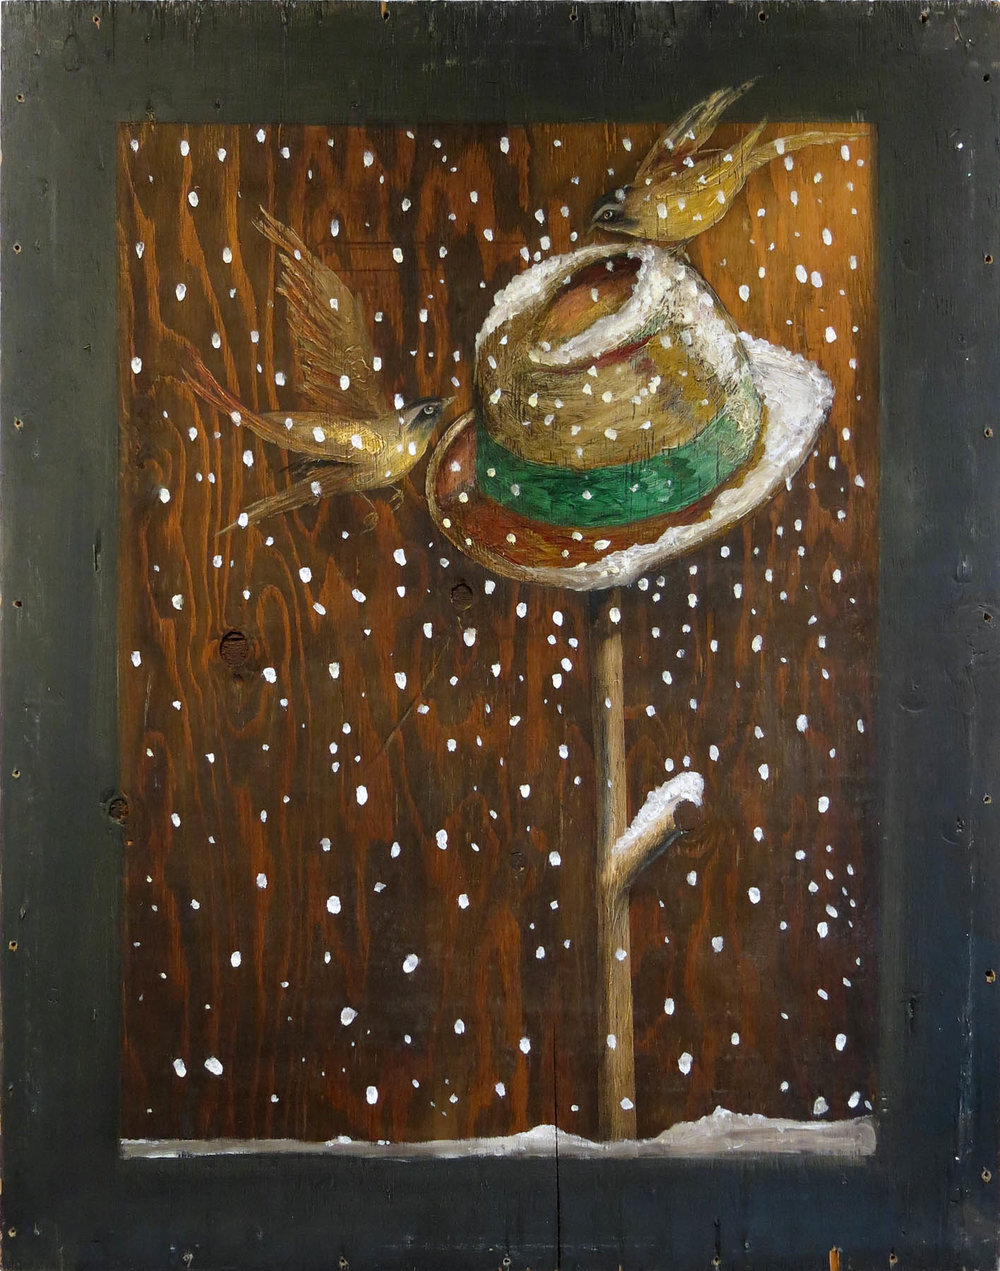 Robert Helm,  Birdfeeder , 1984, oil on wood, 35h x 27w in.